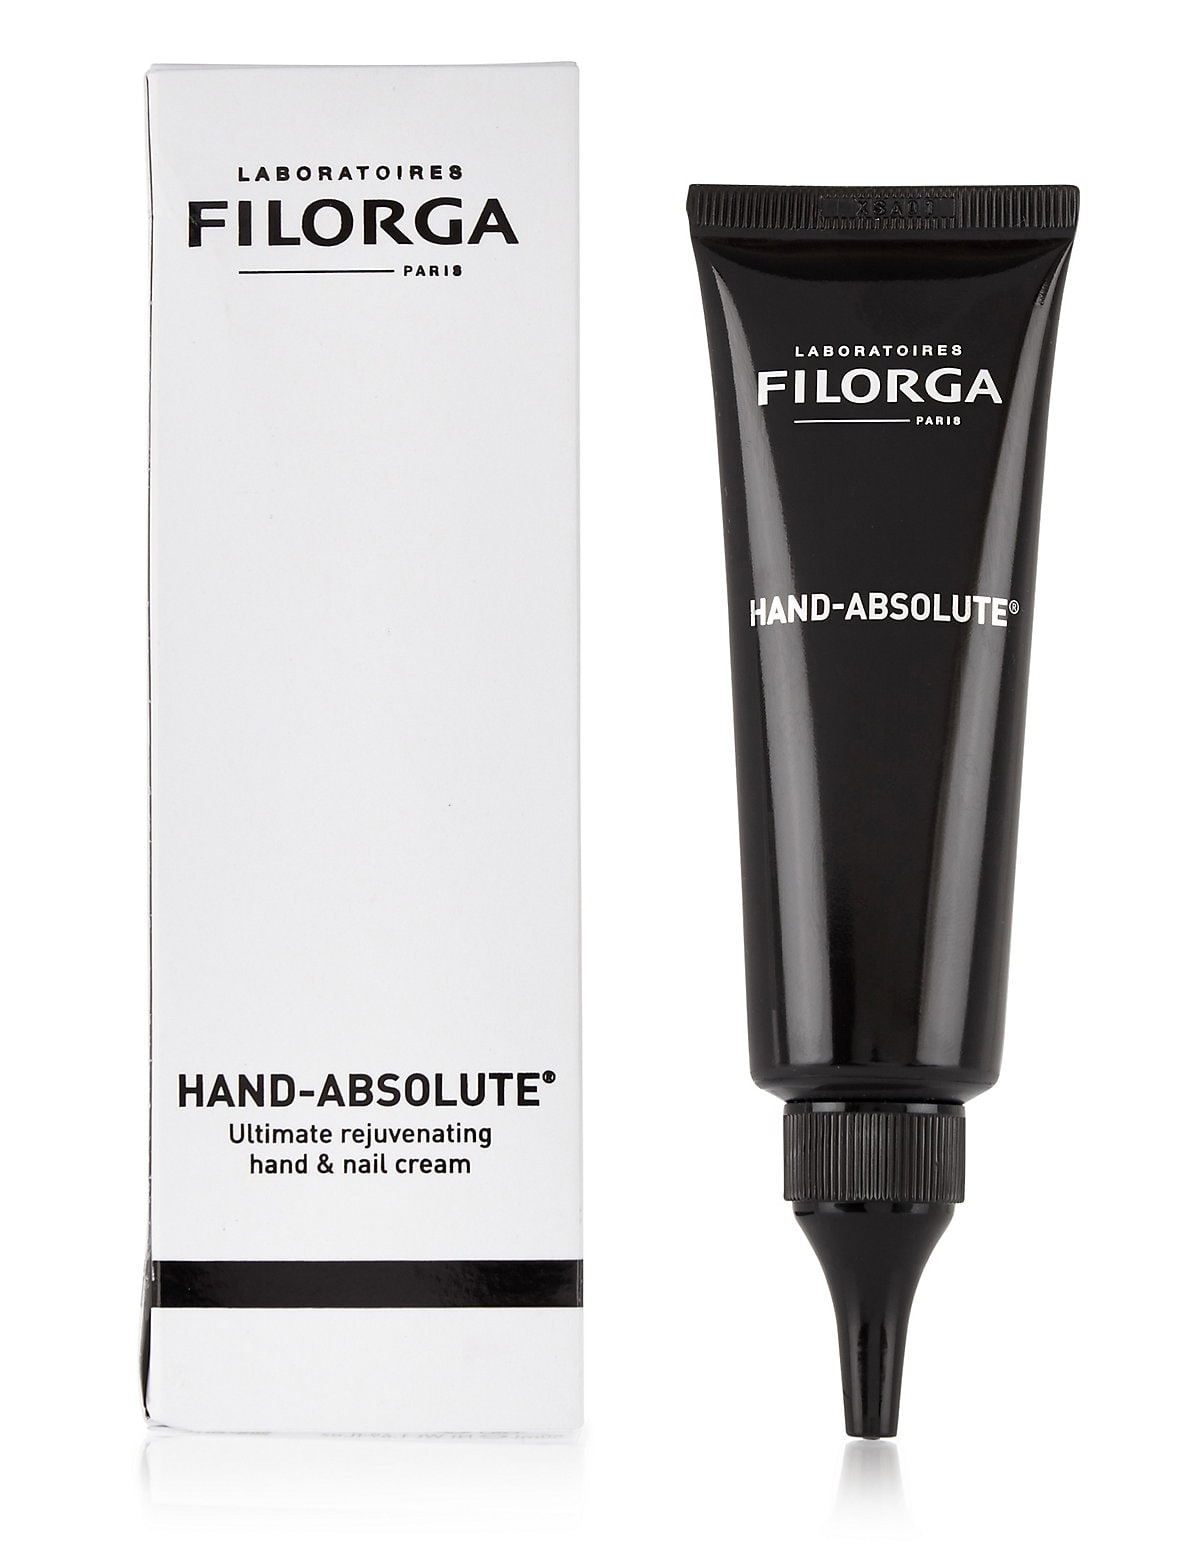 FILORGA Hand-Absolute® Ultimate Rejuvenating Hand & Nail Cream